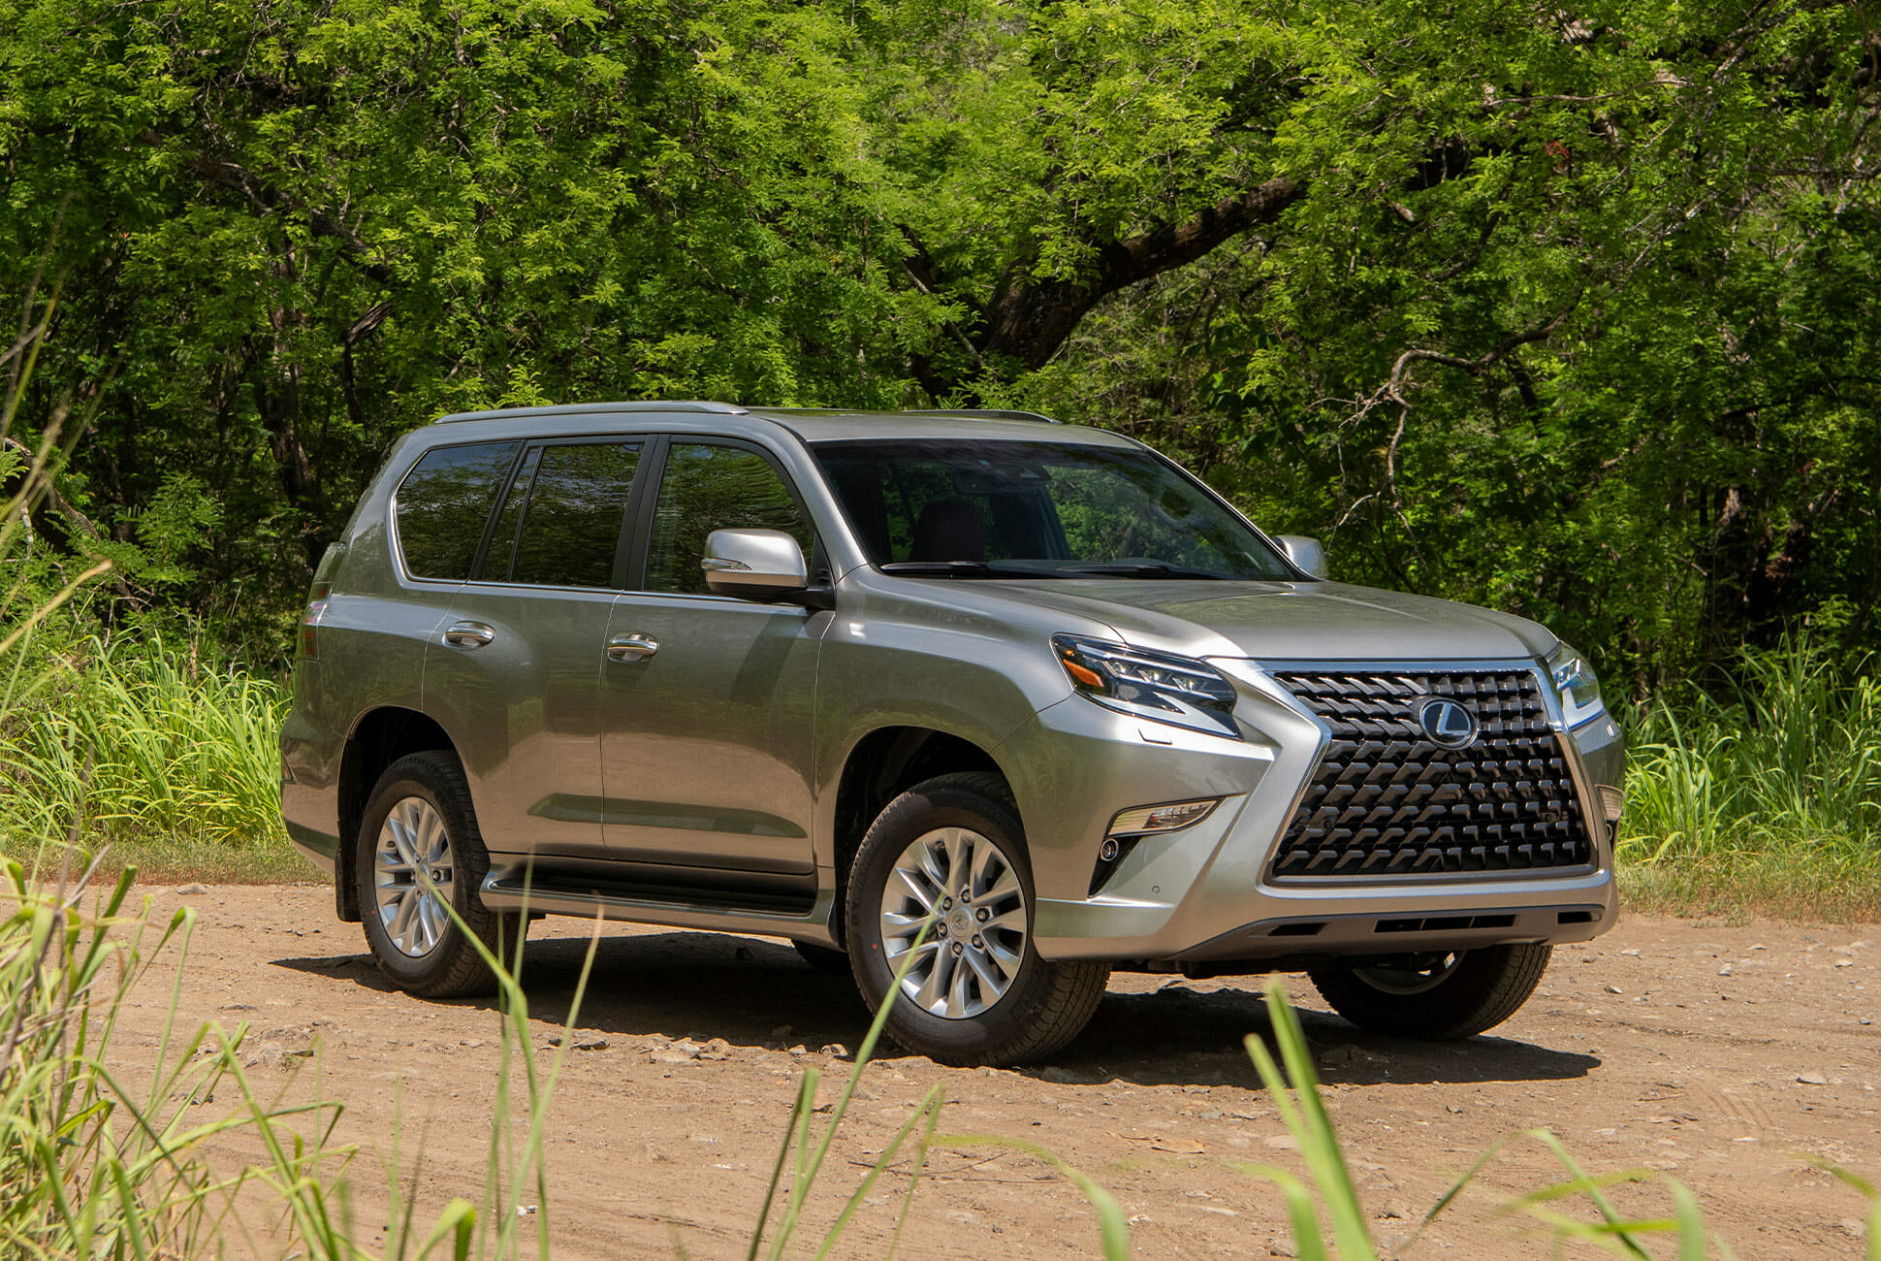 5 Lexus GX 5 Review: The Other Leather-Lined Land Cruiser ..